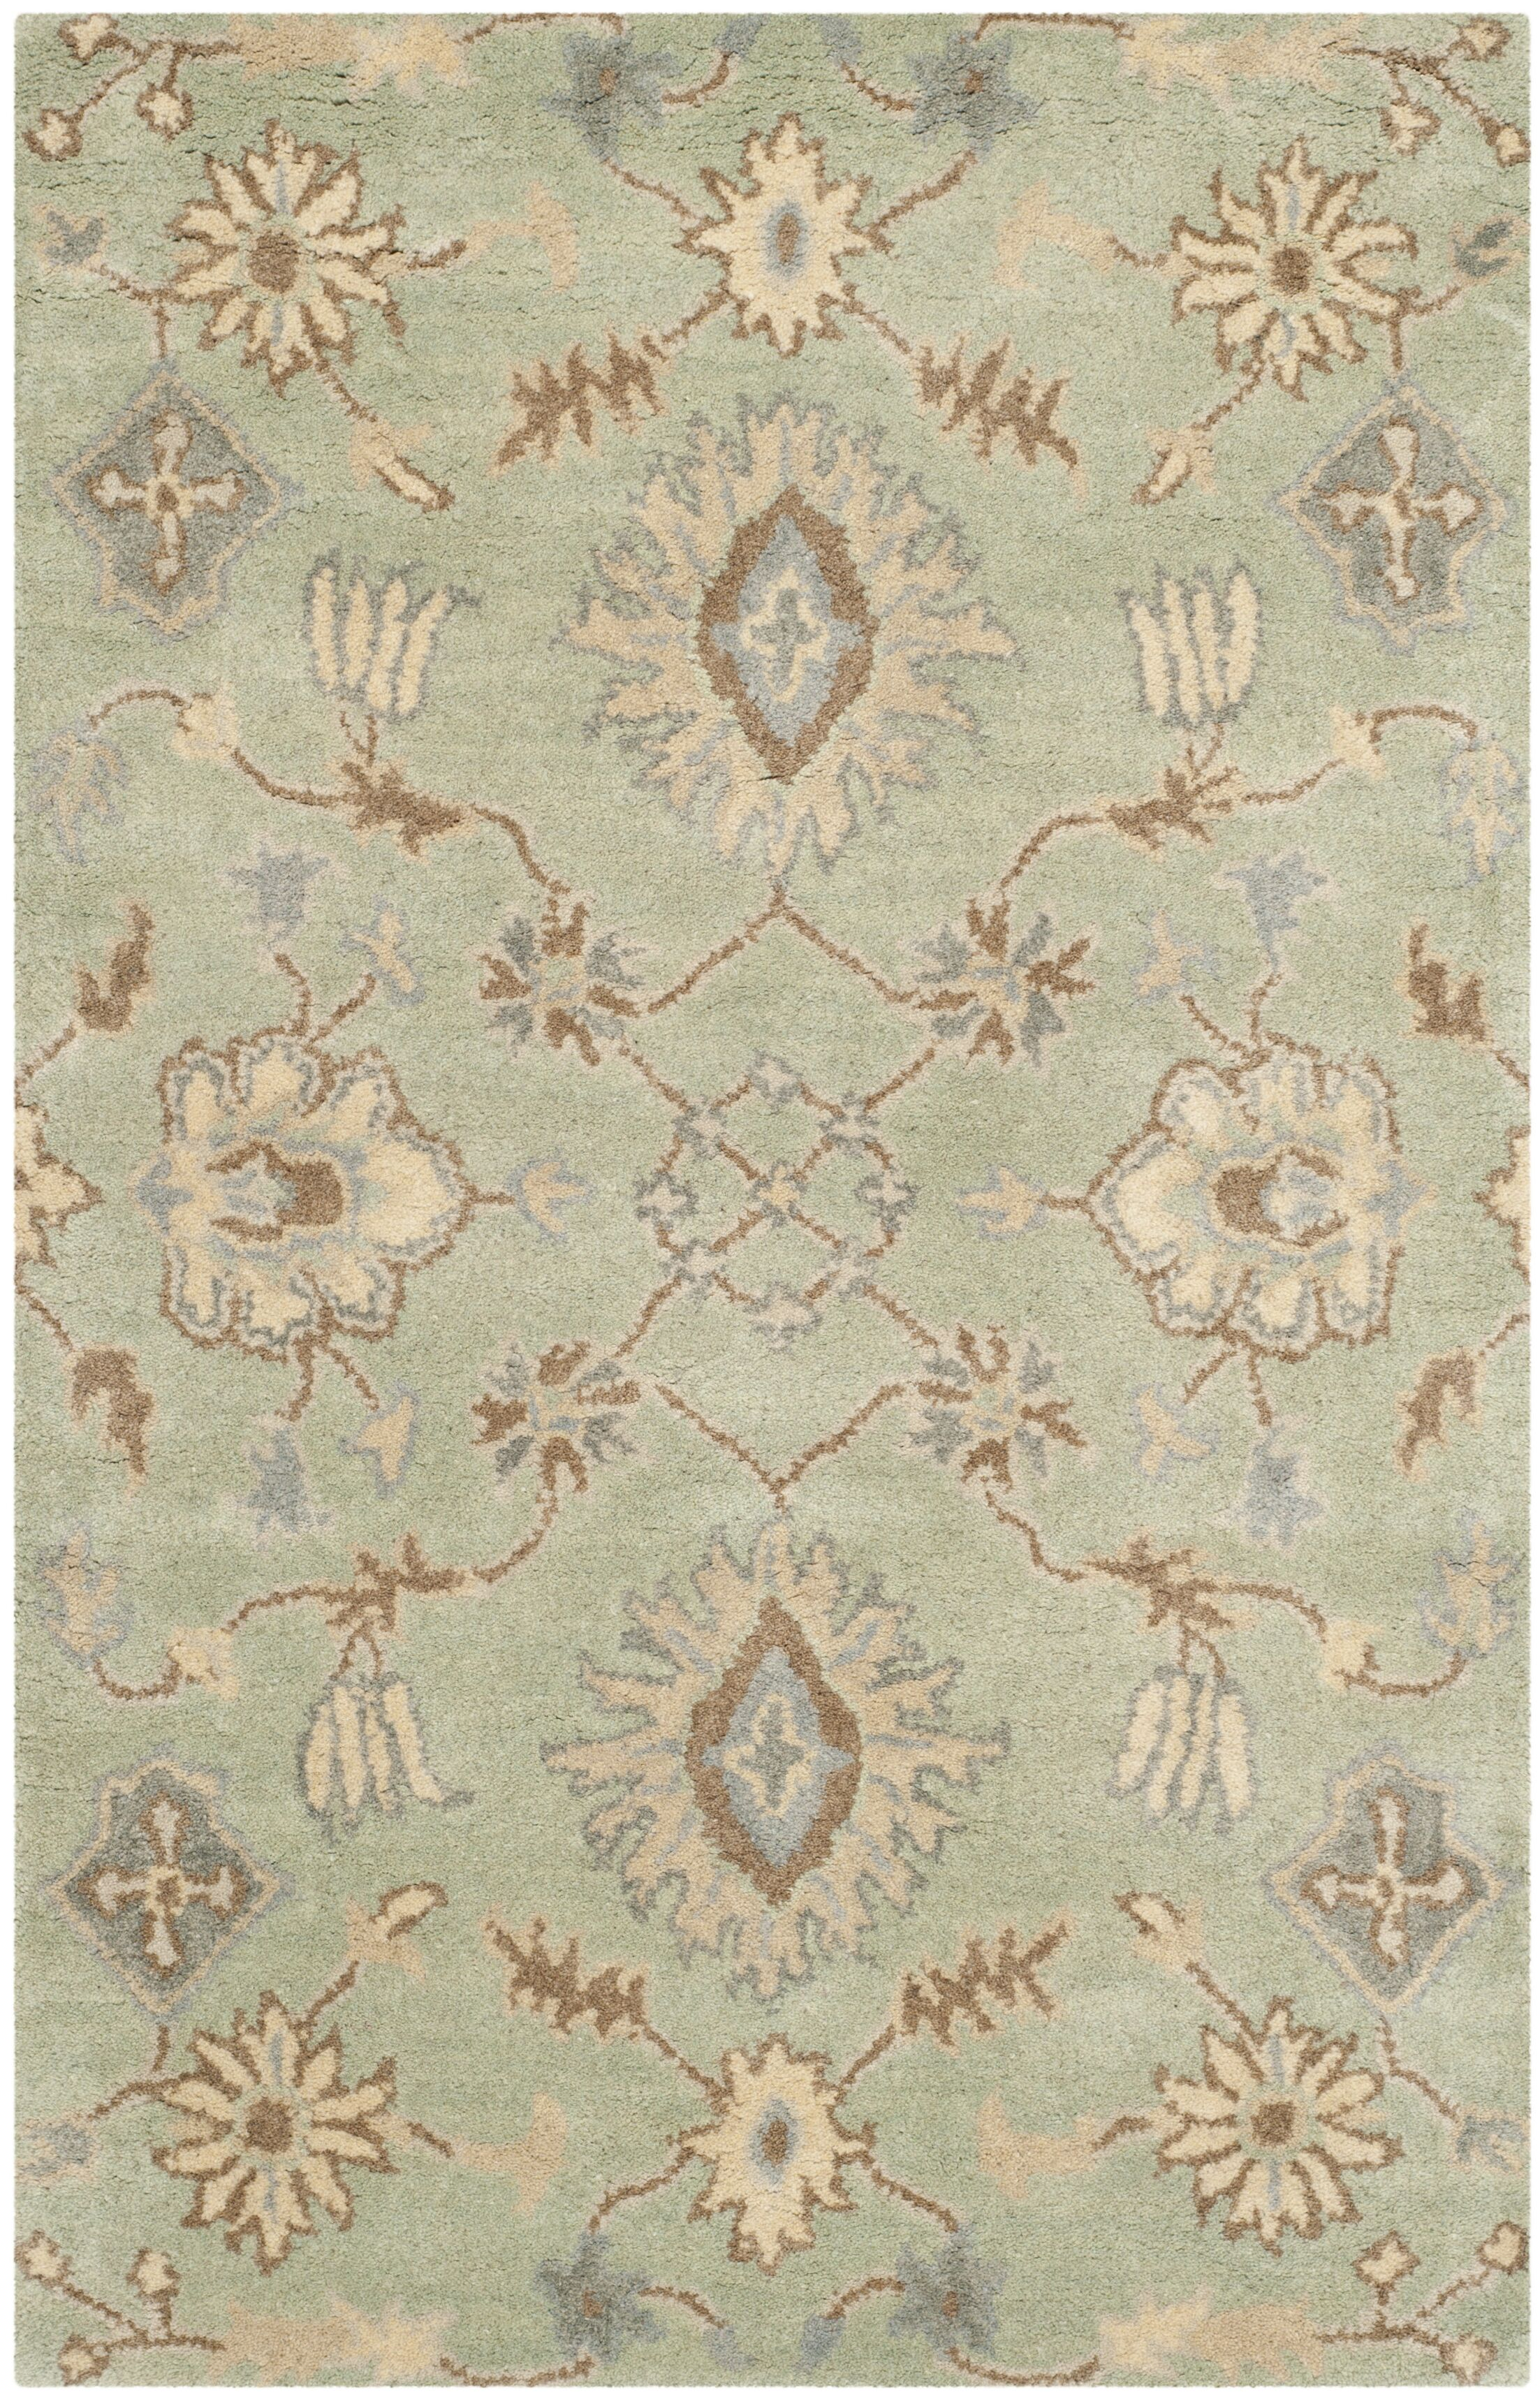 Colesberry Light Green Area Rug Rug Size: Rectangle 4' x 6'